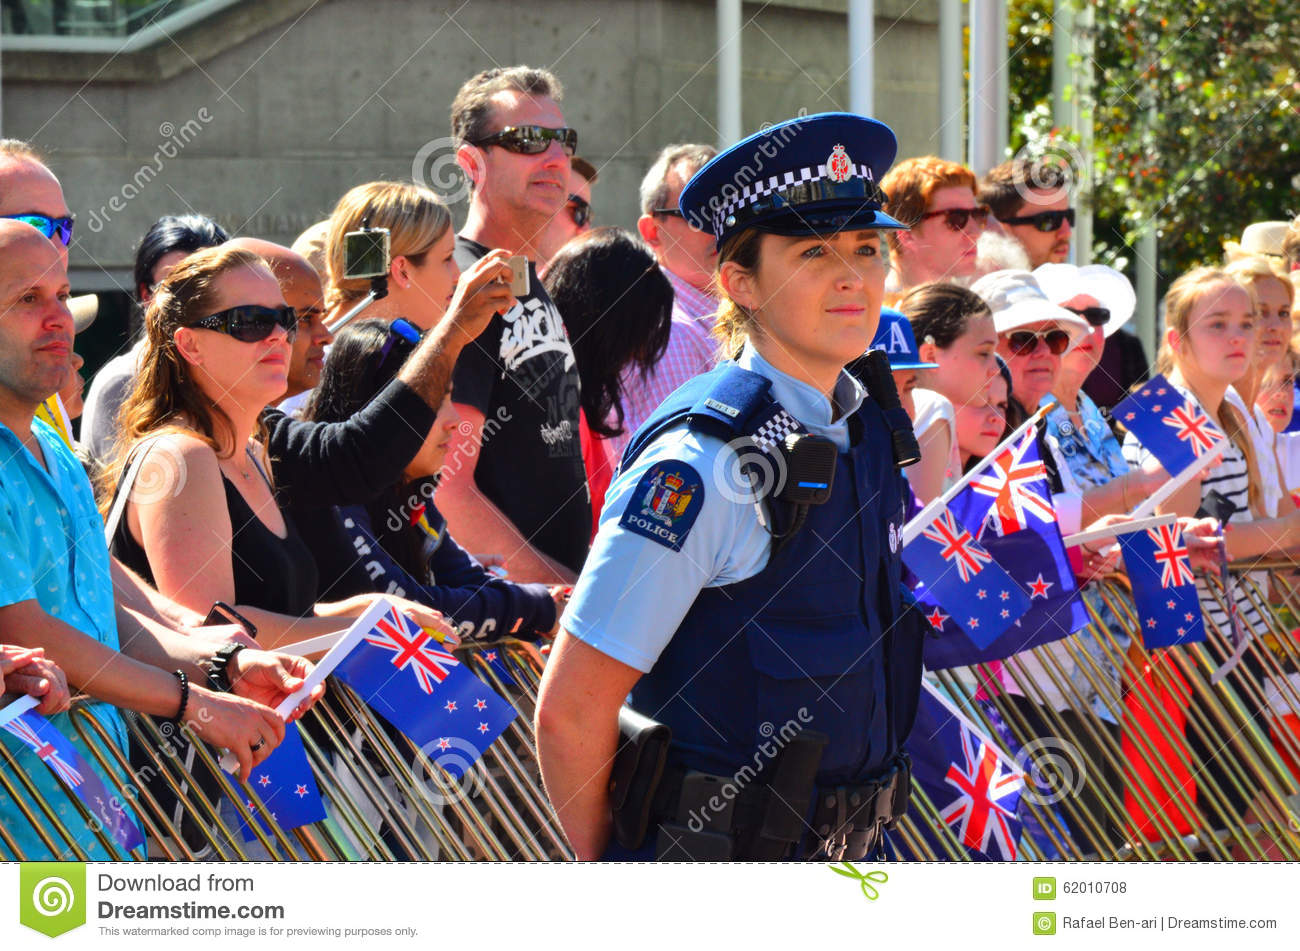 ... Woman Guarding Crowd Of People Editorial Stock Photo - Image: 62010708